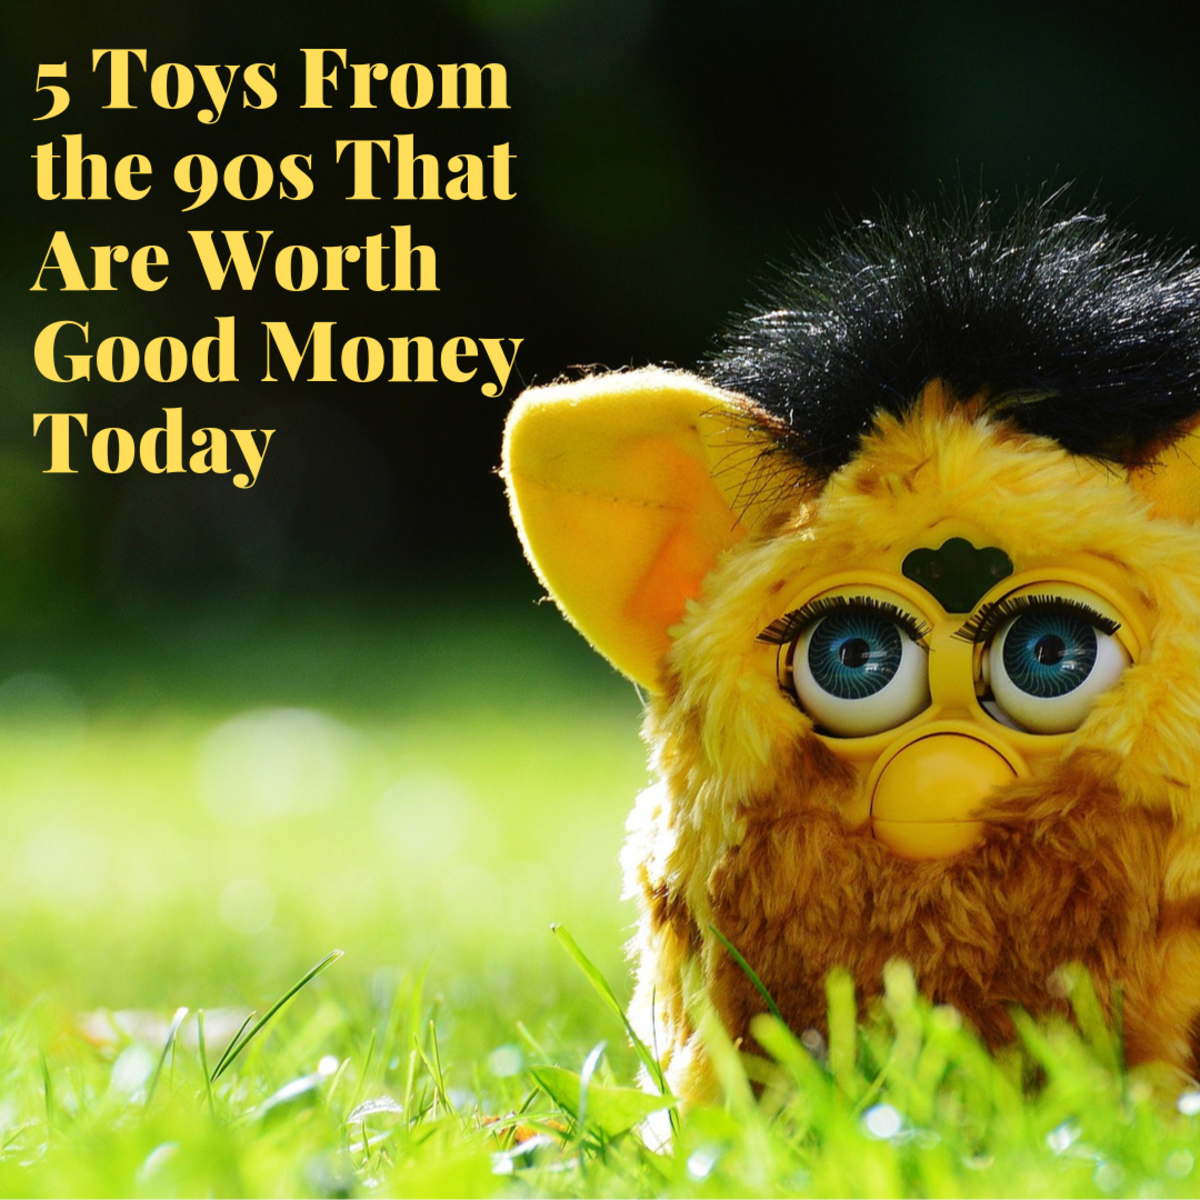 5 Popular Toys From the 90s That Are Worth Money Today